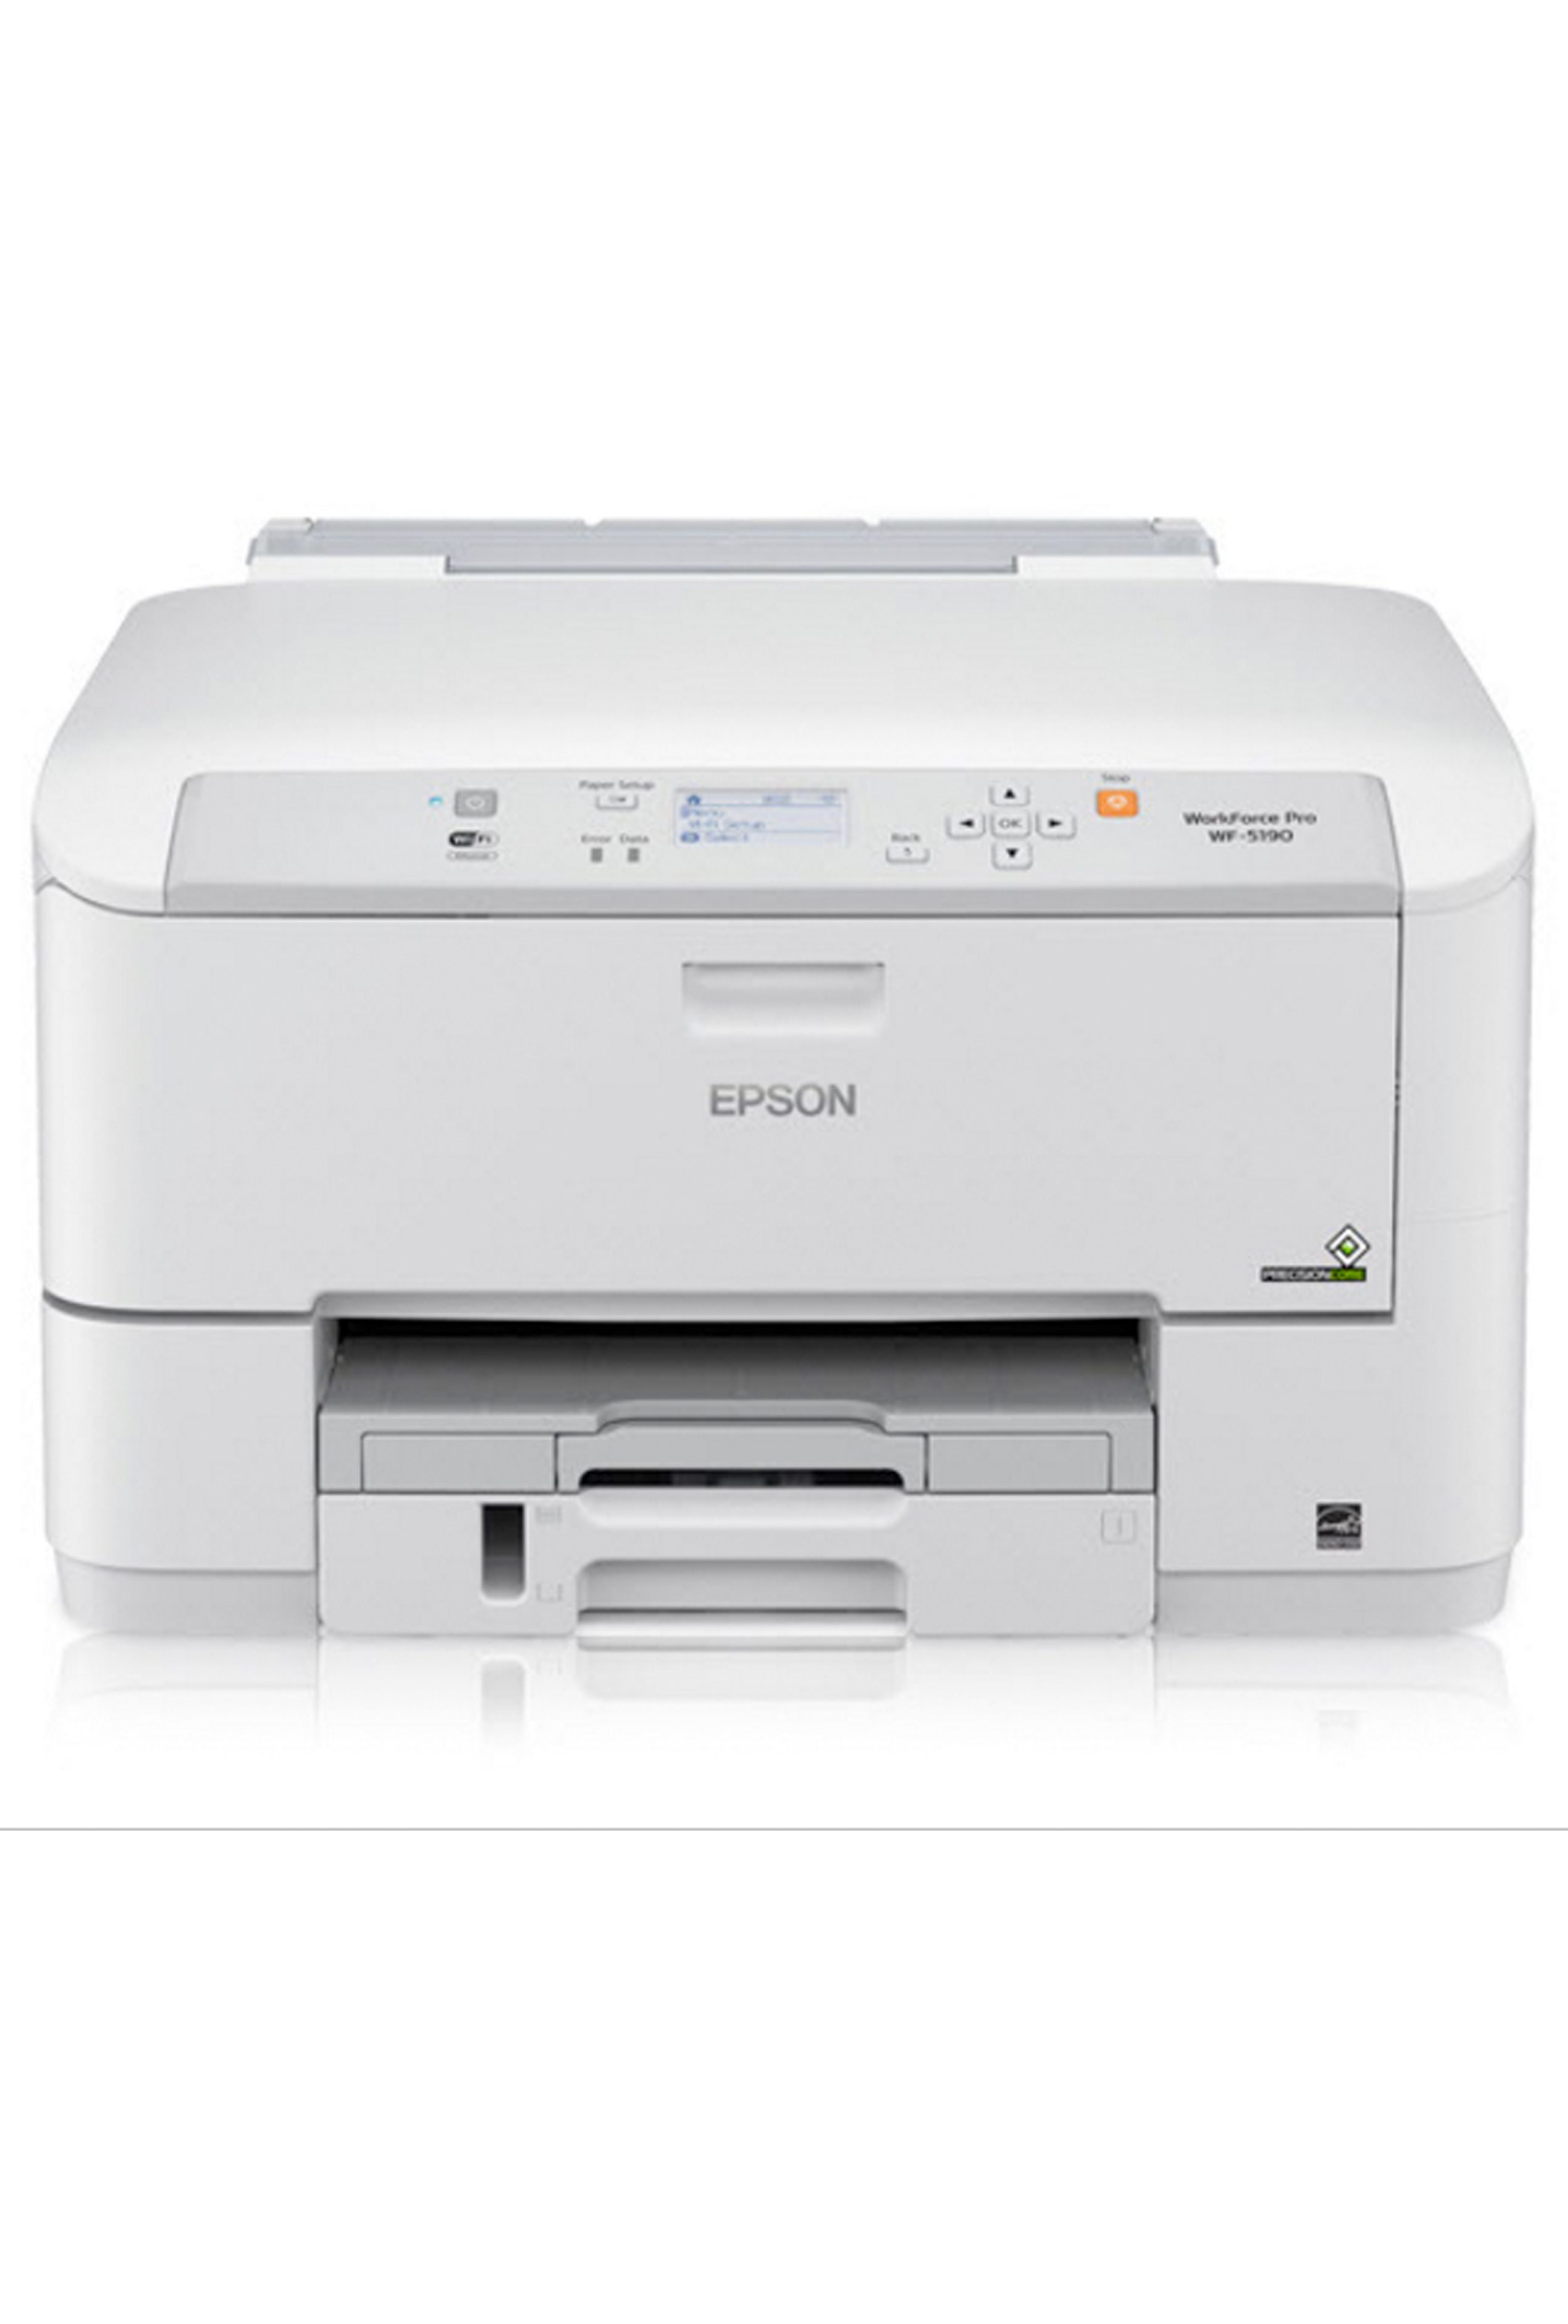 Epson WorkForce Pro WF-5190 Network Color Printer with...